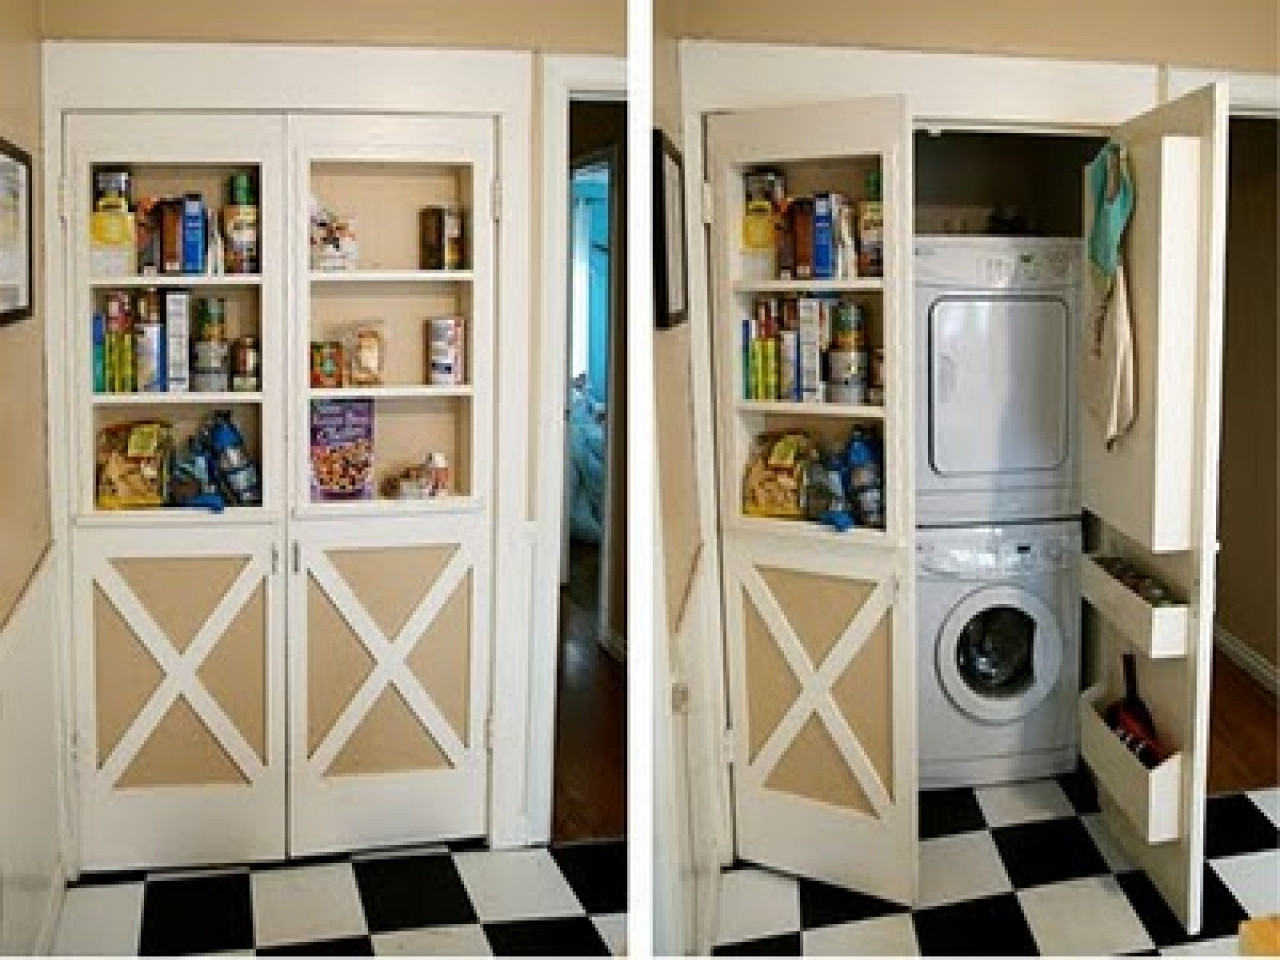 Best ideas about Small Laundry Room Storage Ideas . Save or Pin Storage ideas for small laundry room unique laundry room Now.